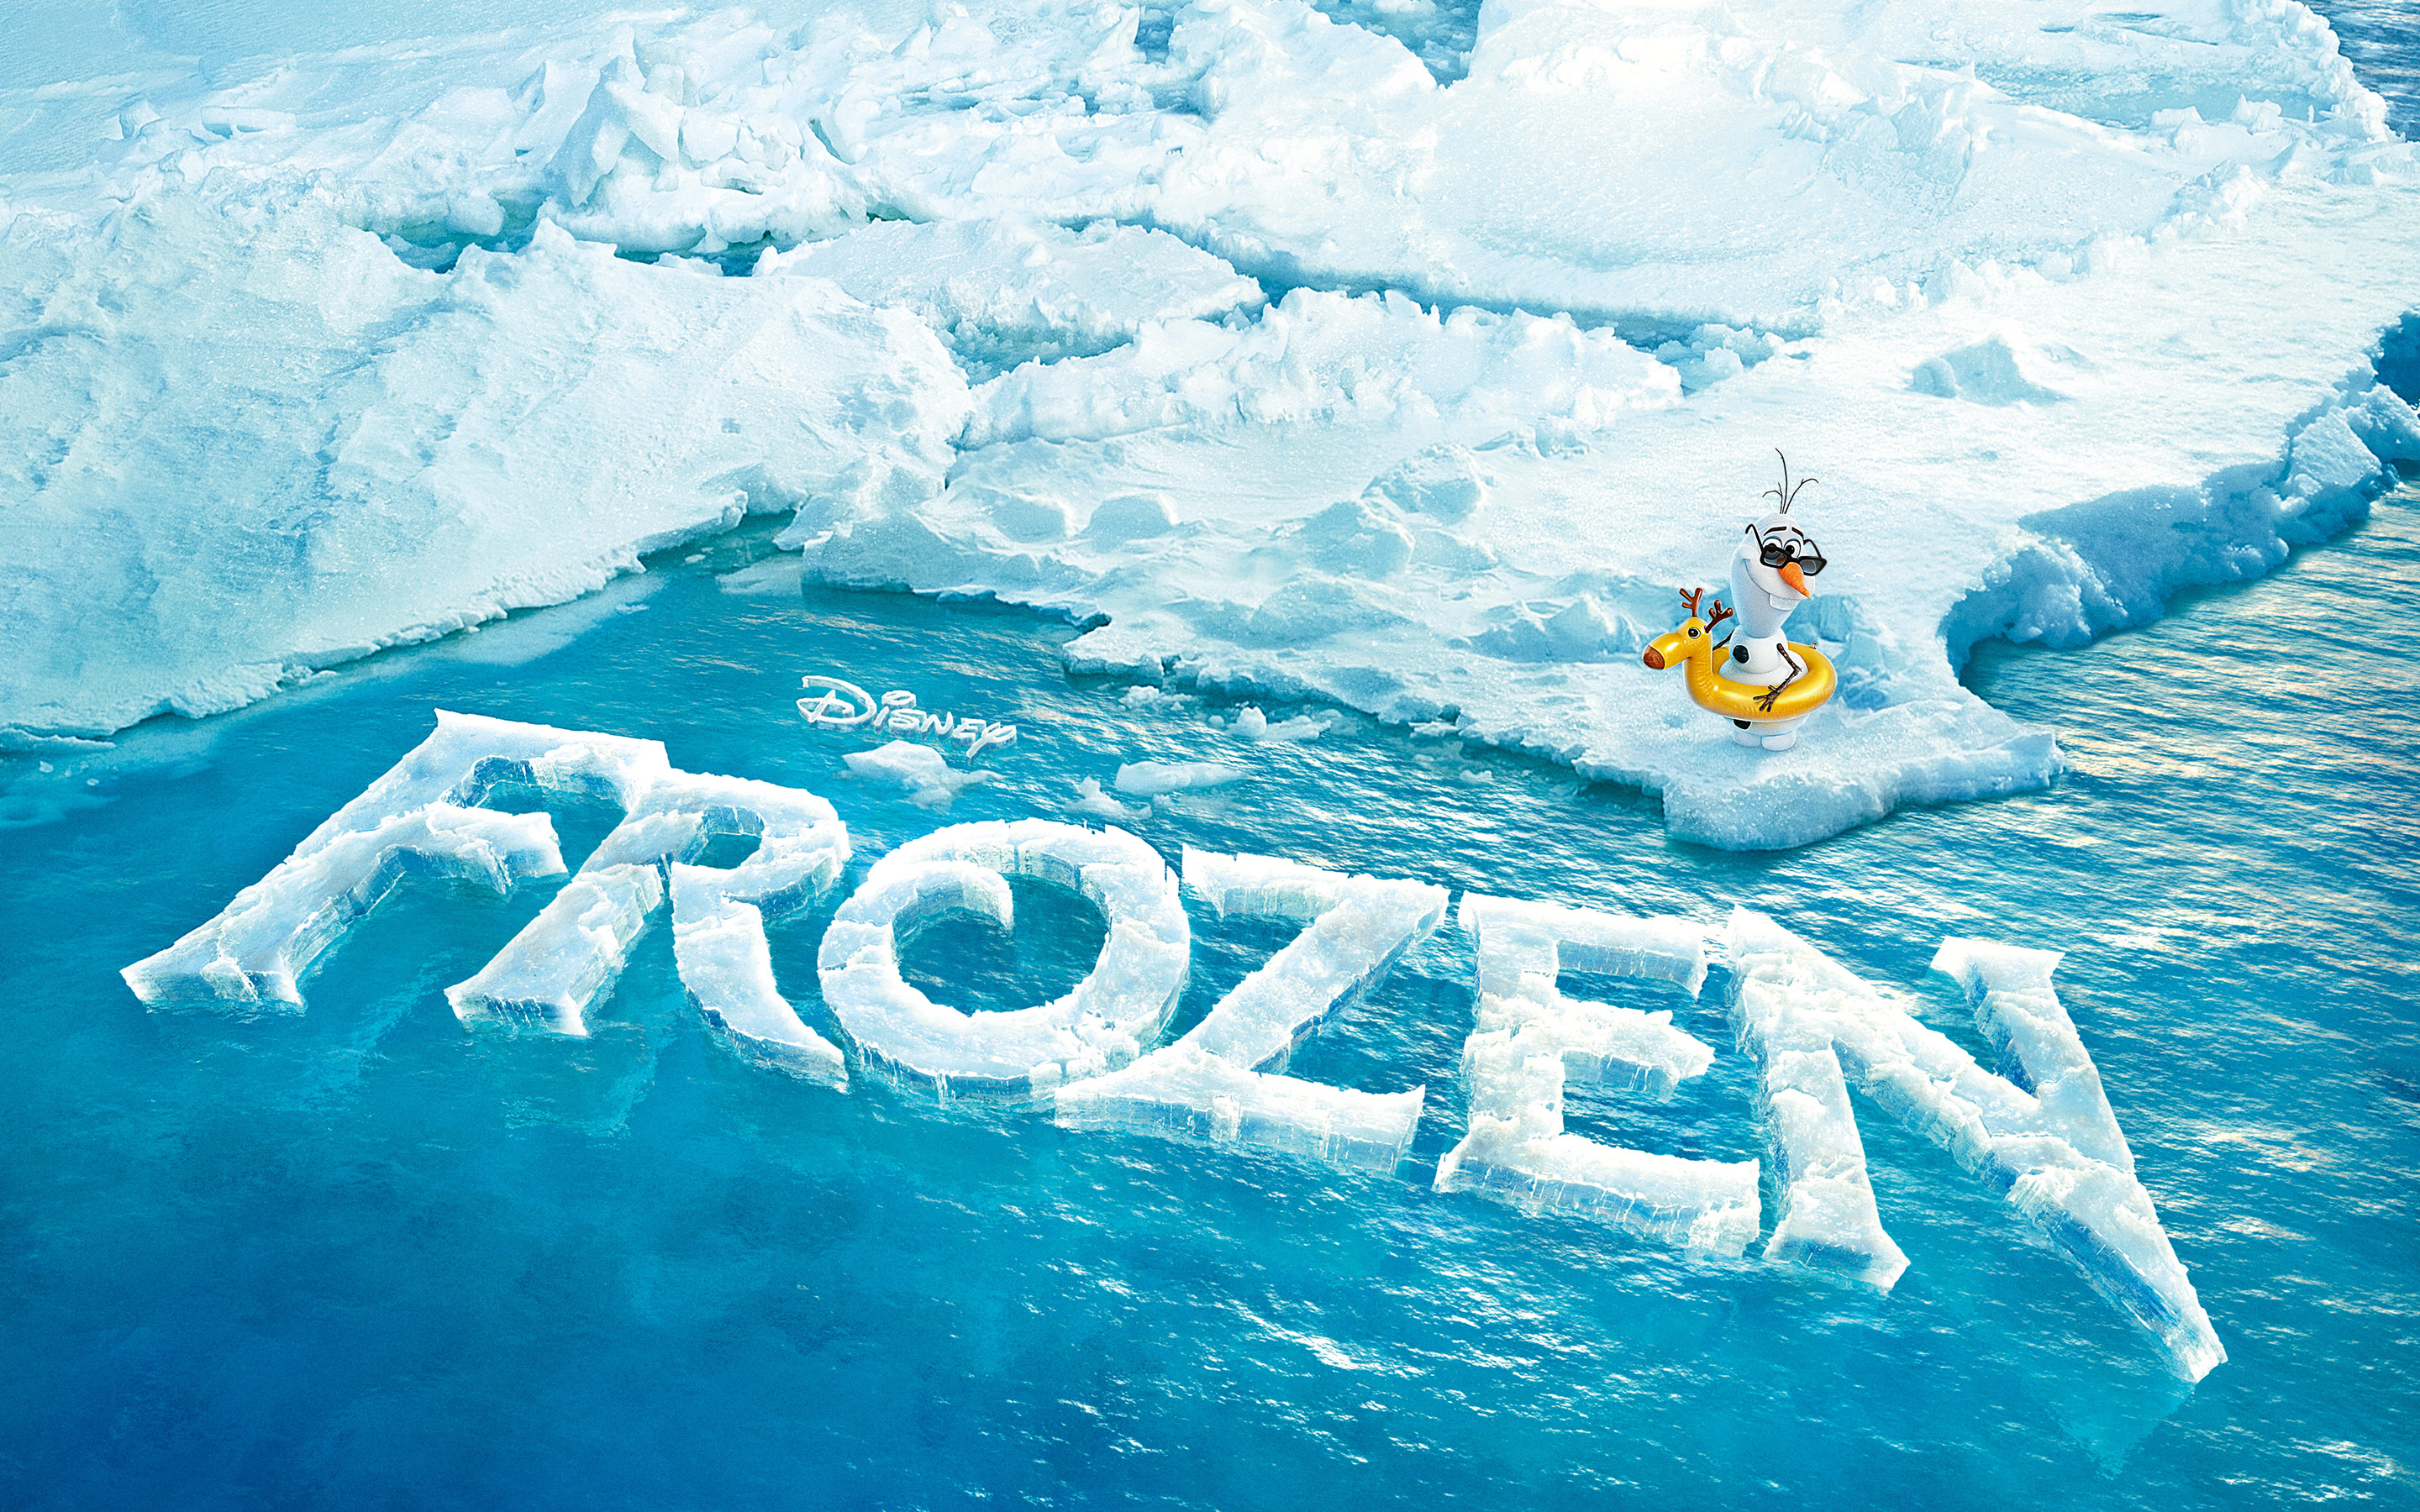 2013 Frozen movie wallpaper Hd wallpapers55com   Best Wallpapers 2880x1800